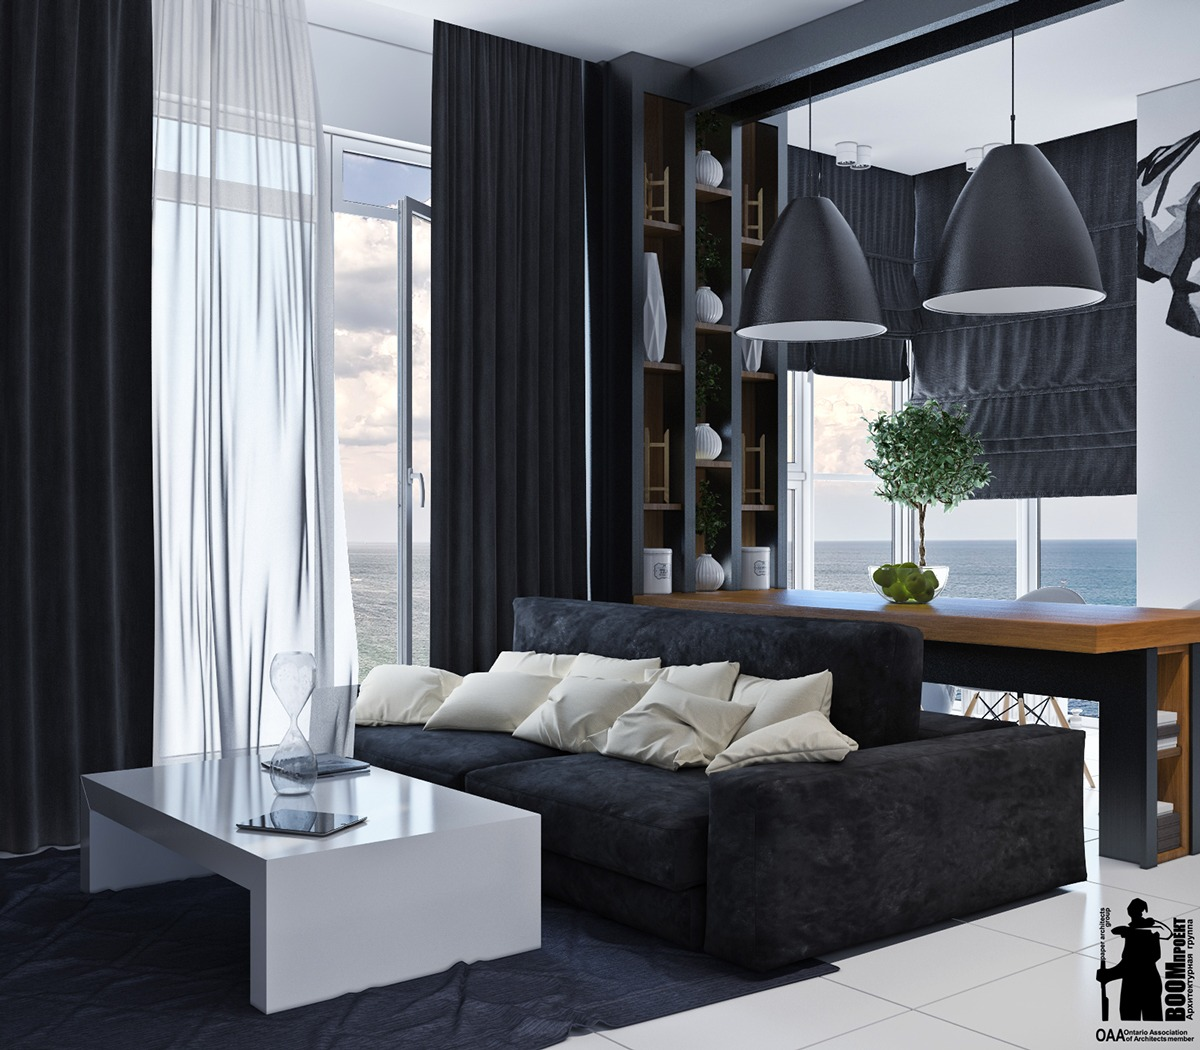 Minimalist Black And White Interior - Artistic apartments with monochromatic color schemes